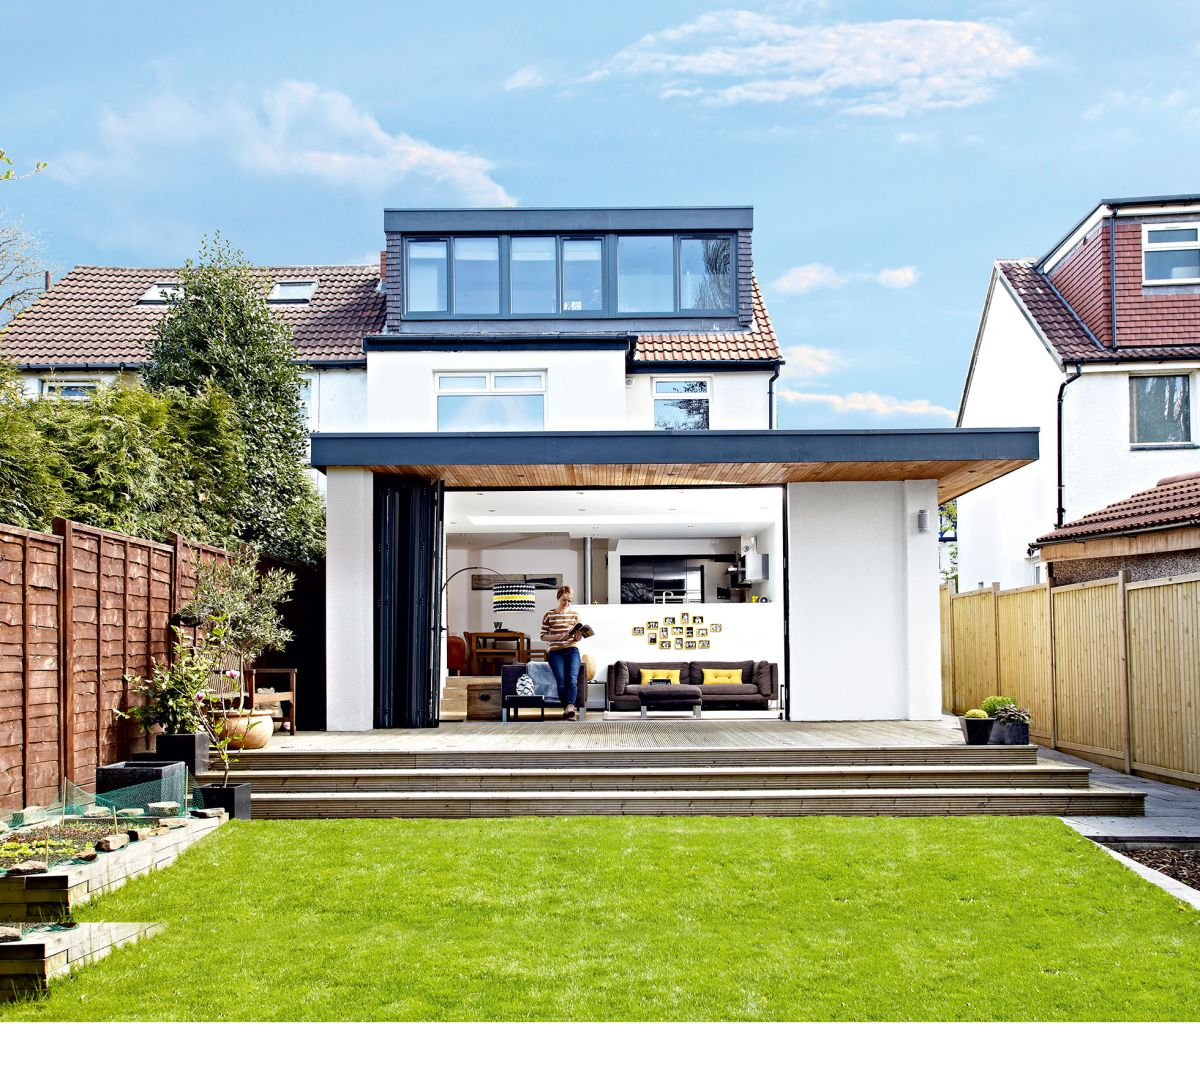 Modern Home Plans With Lofts: Real Home: Gaining Space With A Rear Extension And Loft